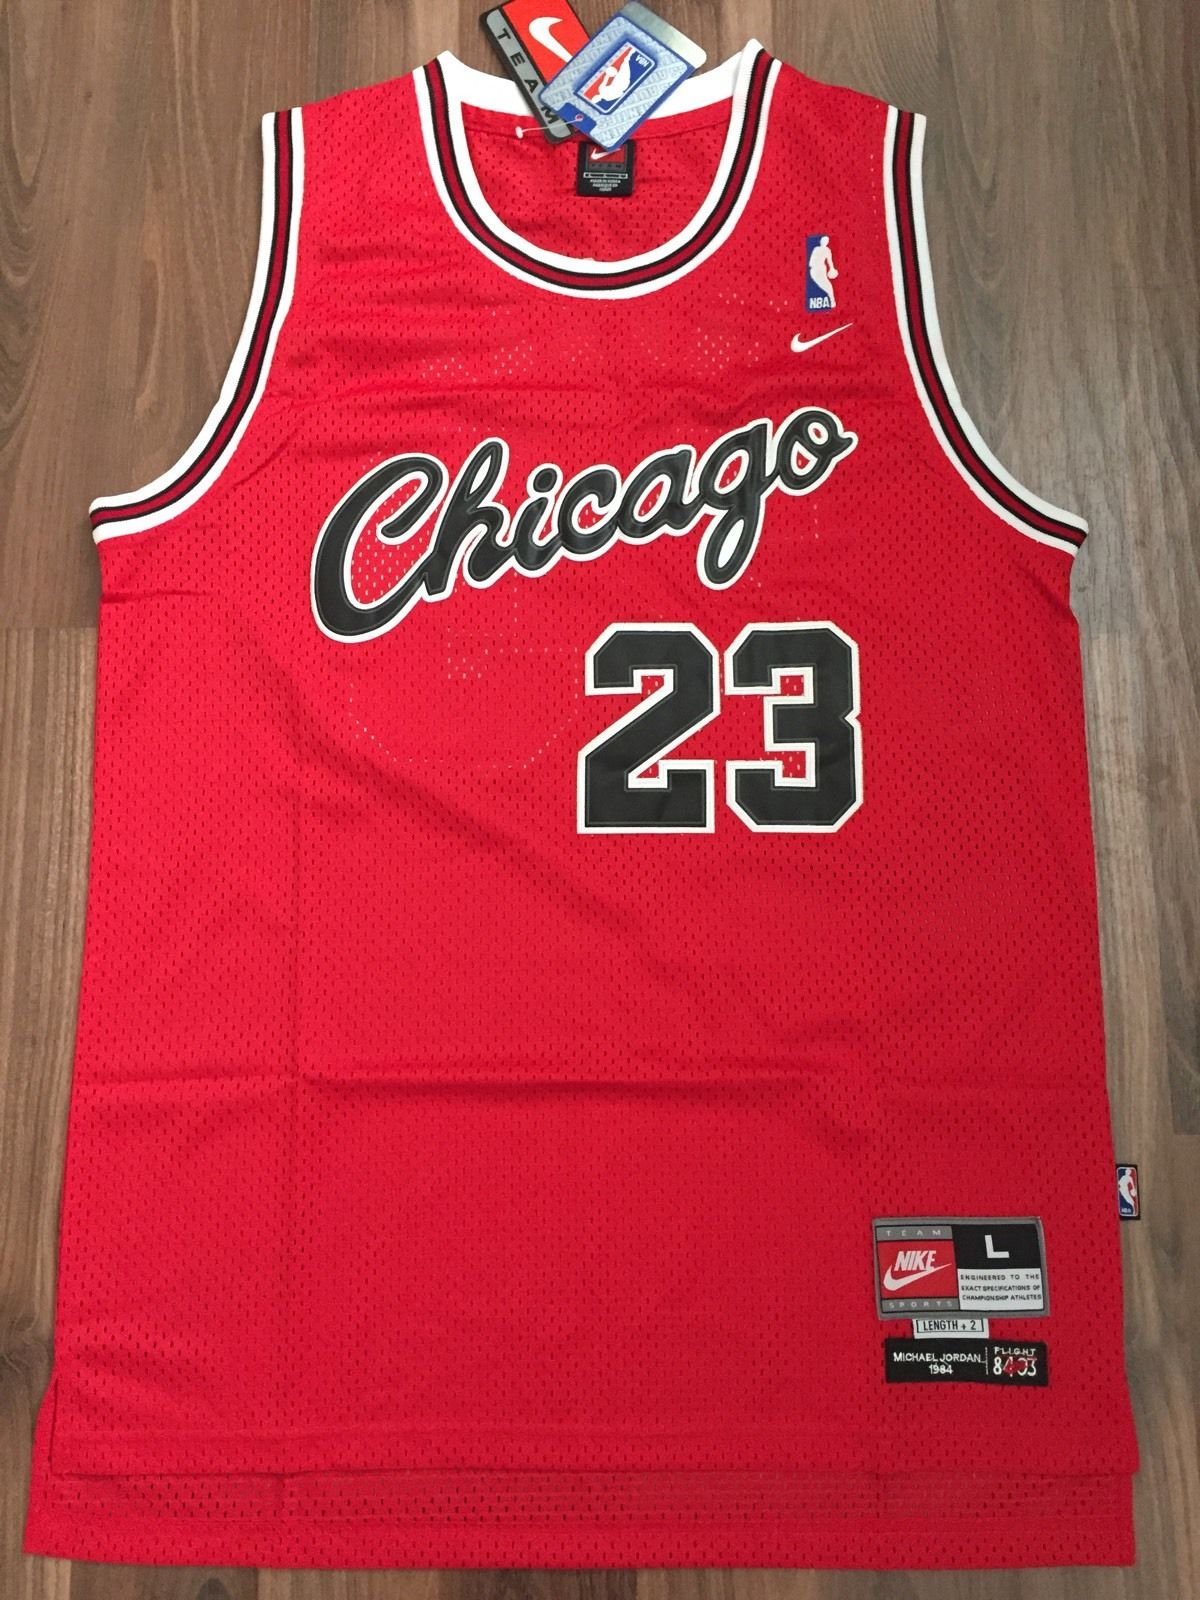 23 Best Tremere Vampire La Mascarada Images On Pinterest: Vintage Gear: Nike Michael Jordan Bulls Rookie Jersey